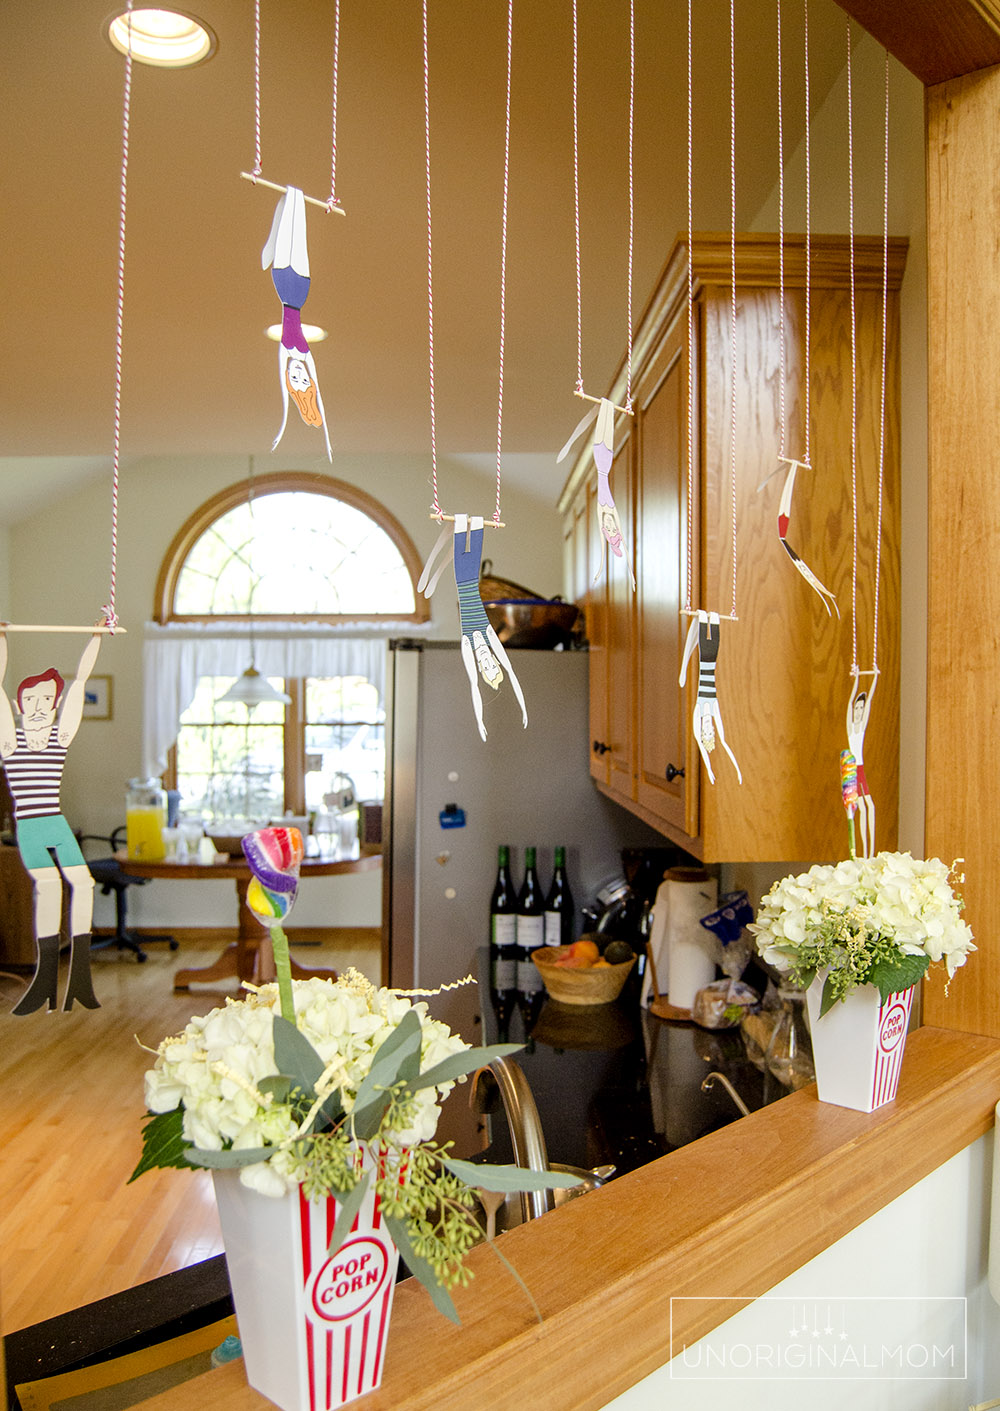 Circus Baby Shower ideas - hanging trapeze artists!